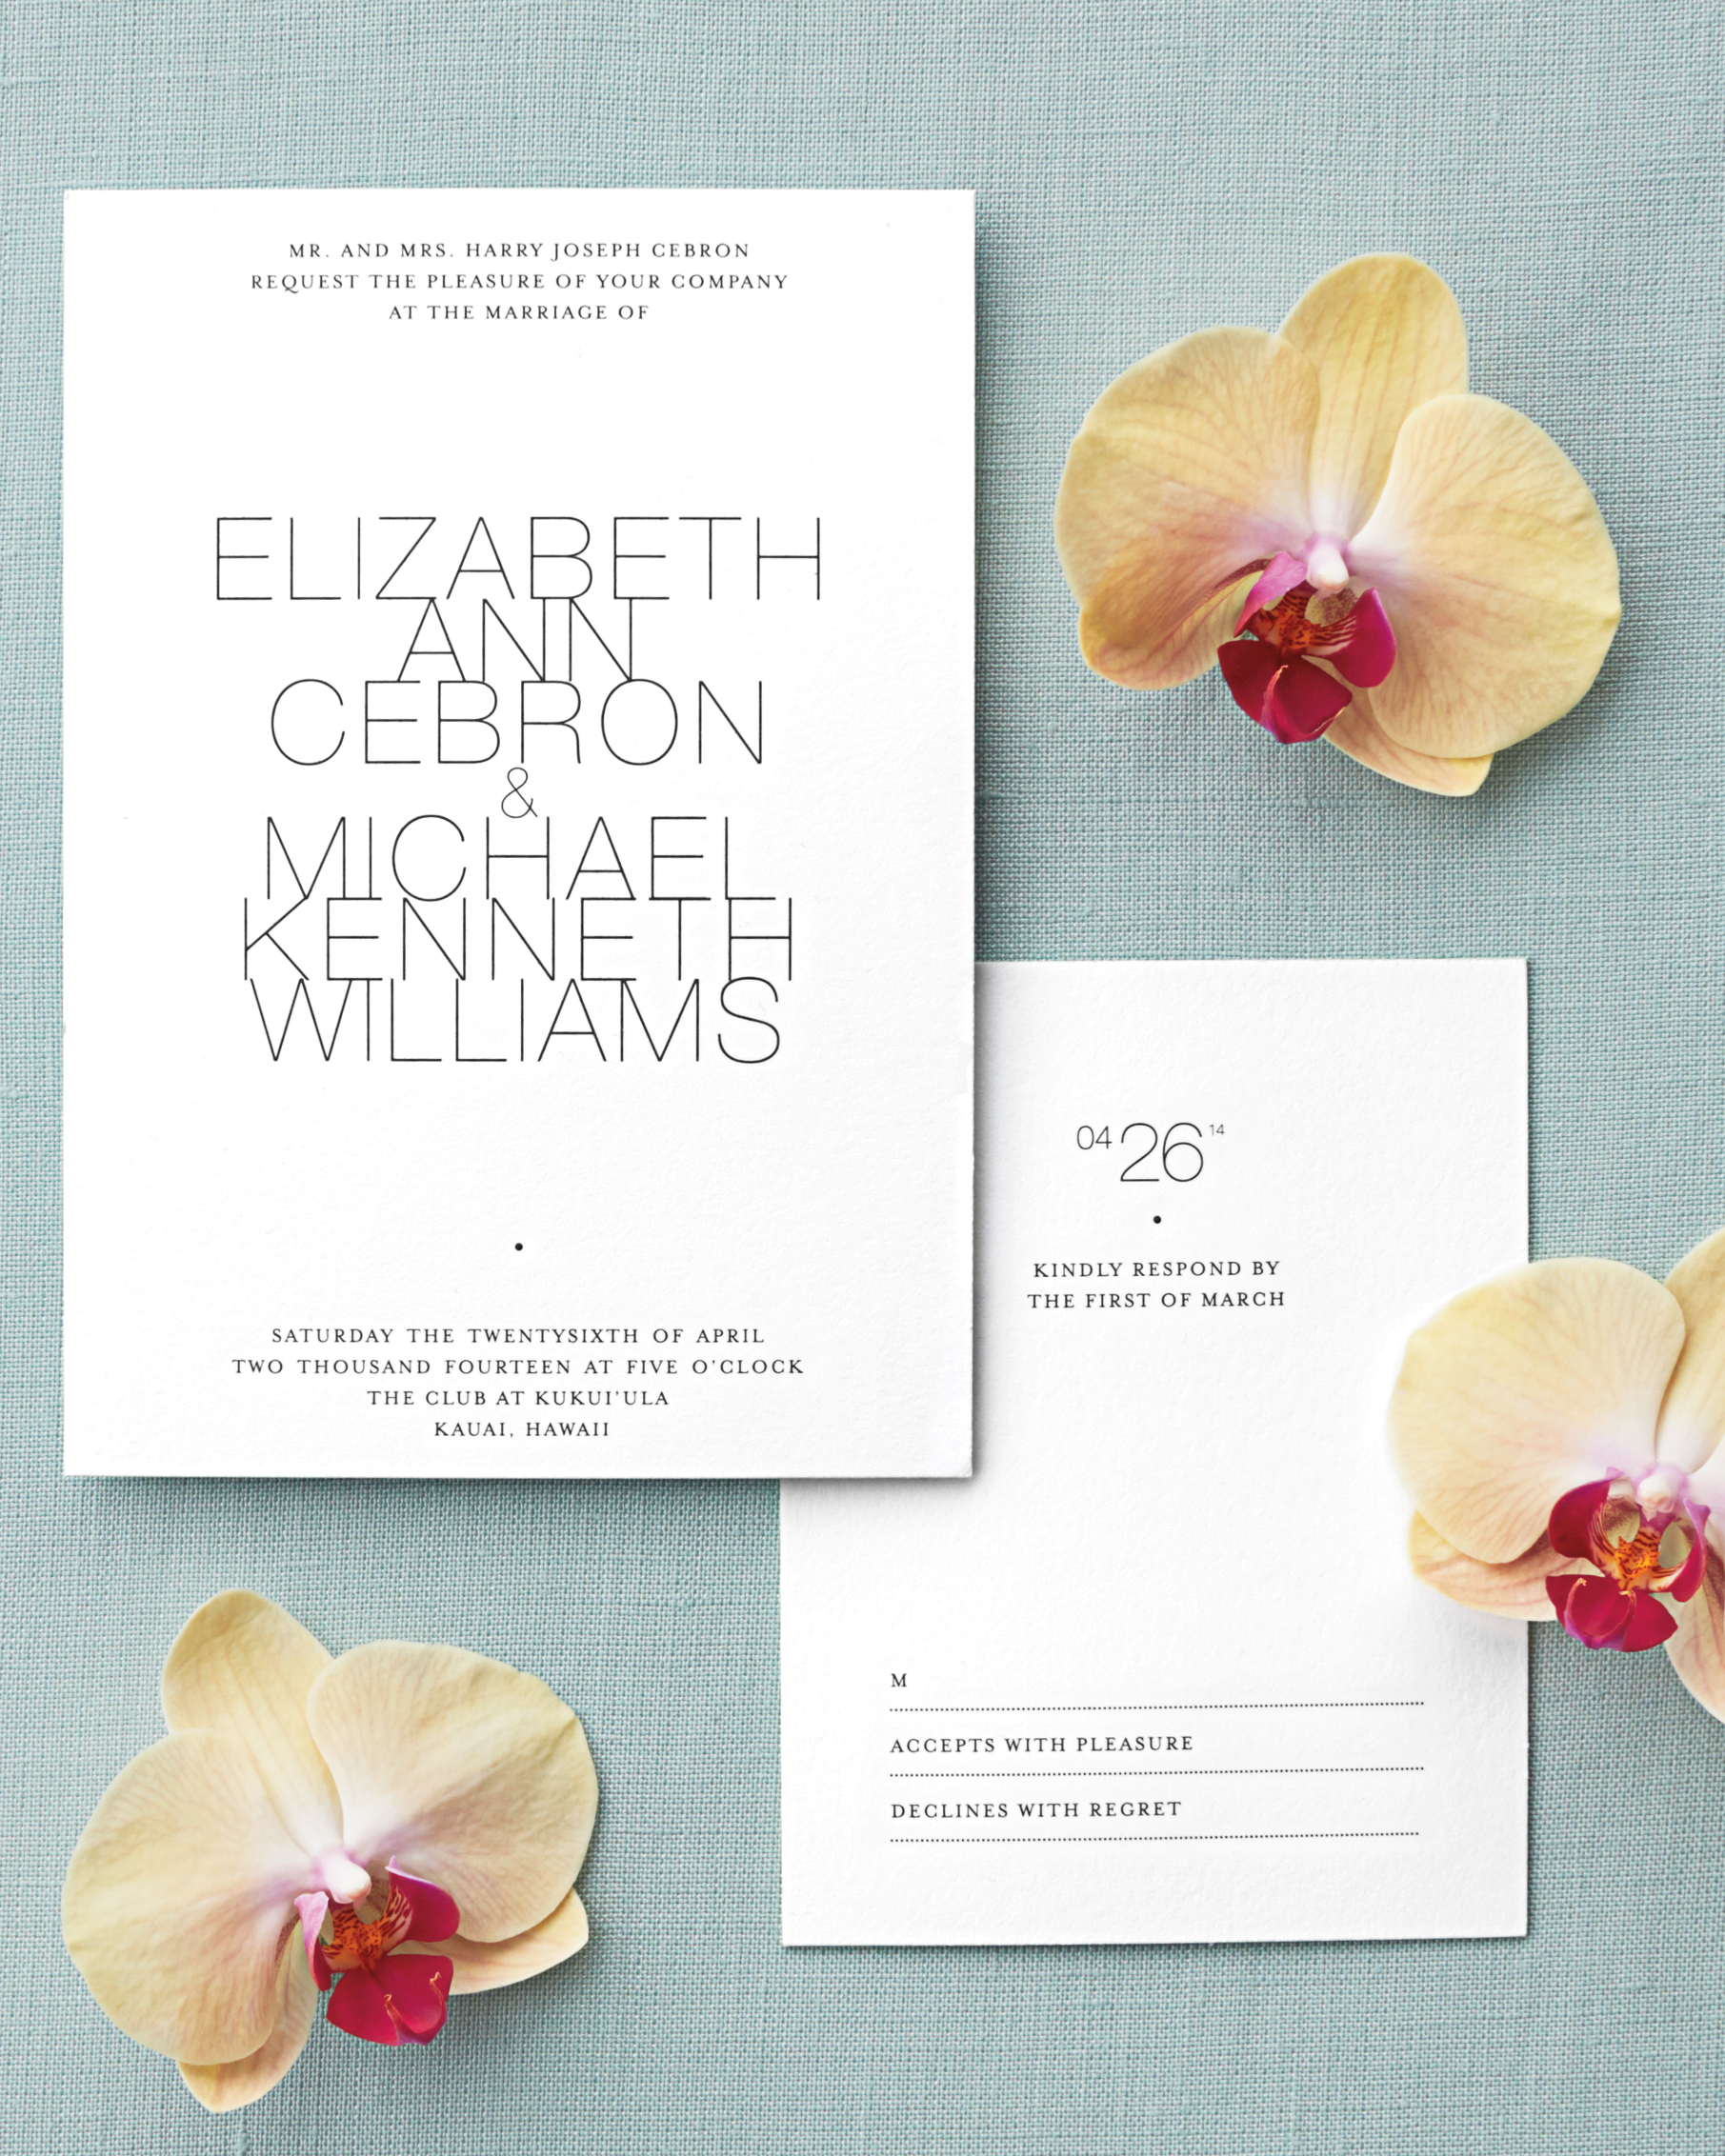 liz-and-michael-stationary-suite-085-d111287.jpg